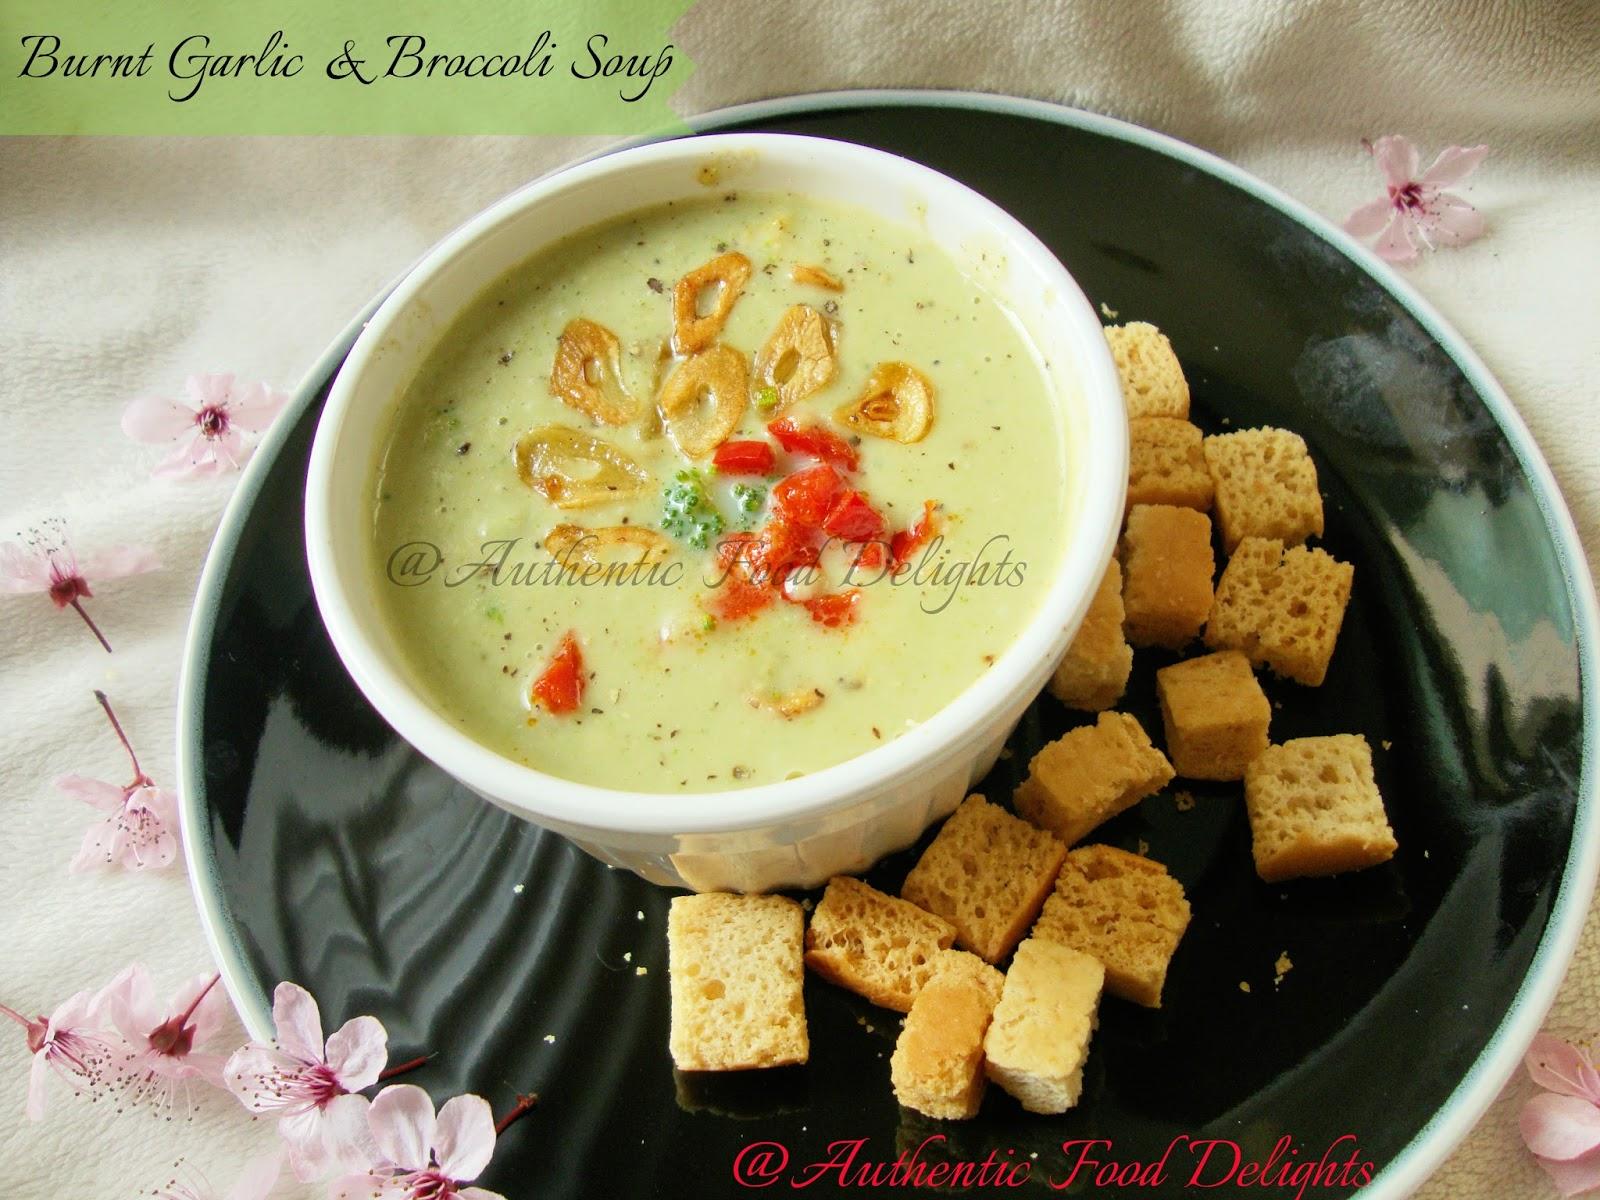 Authentic food delights burnt garlic and broccoli soup forumfinder Choice Image